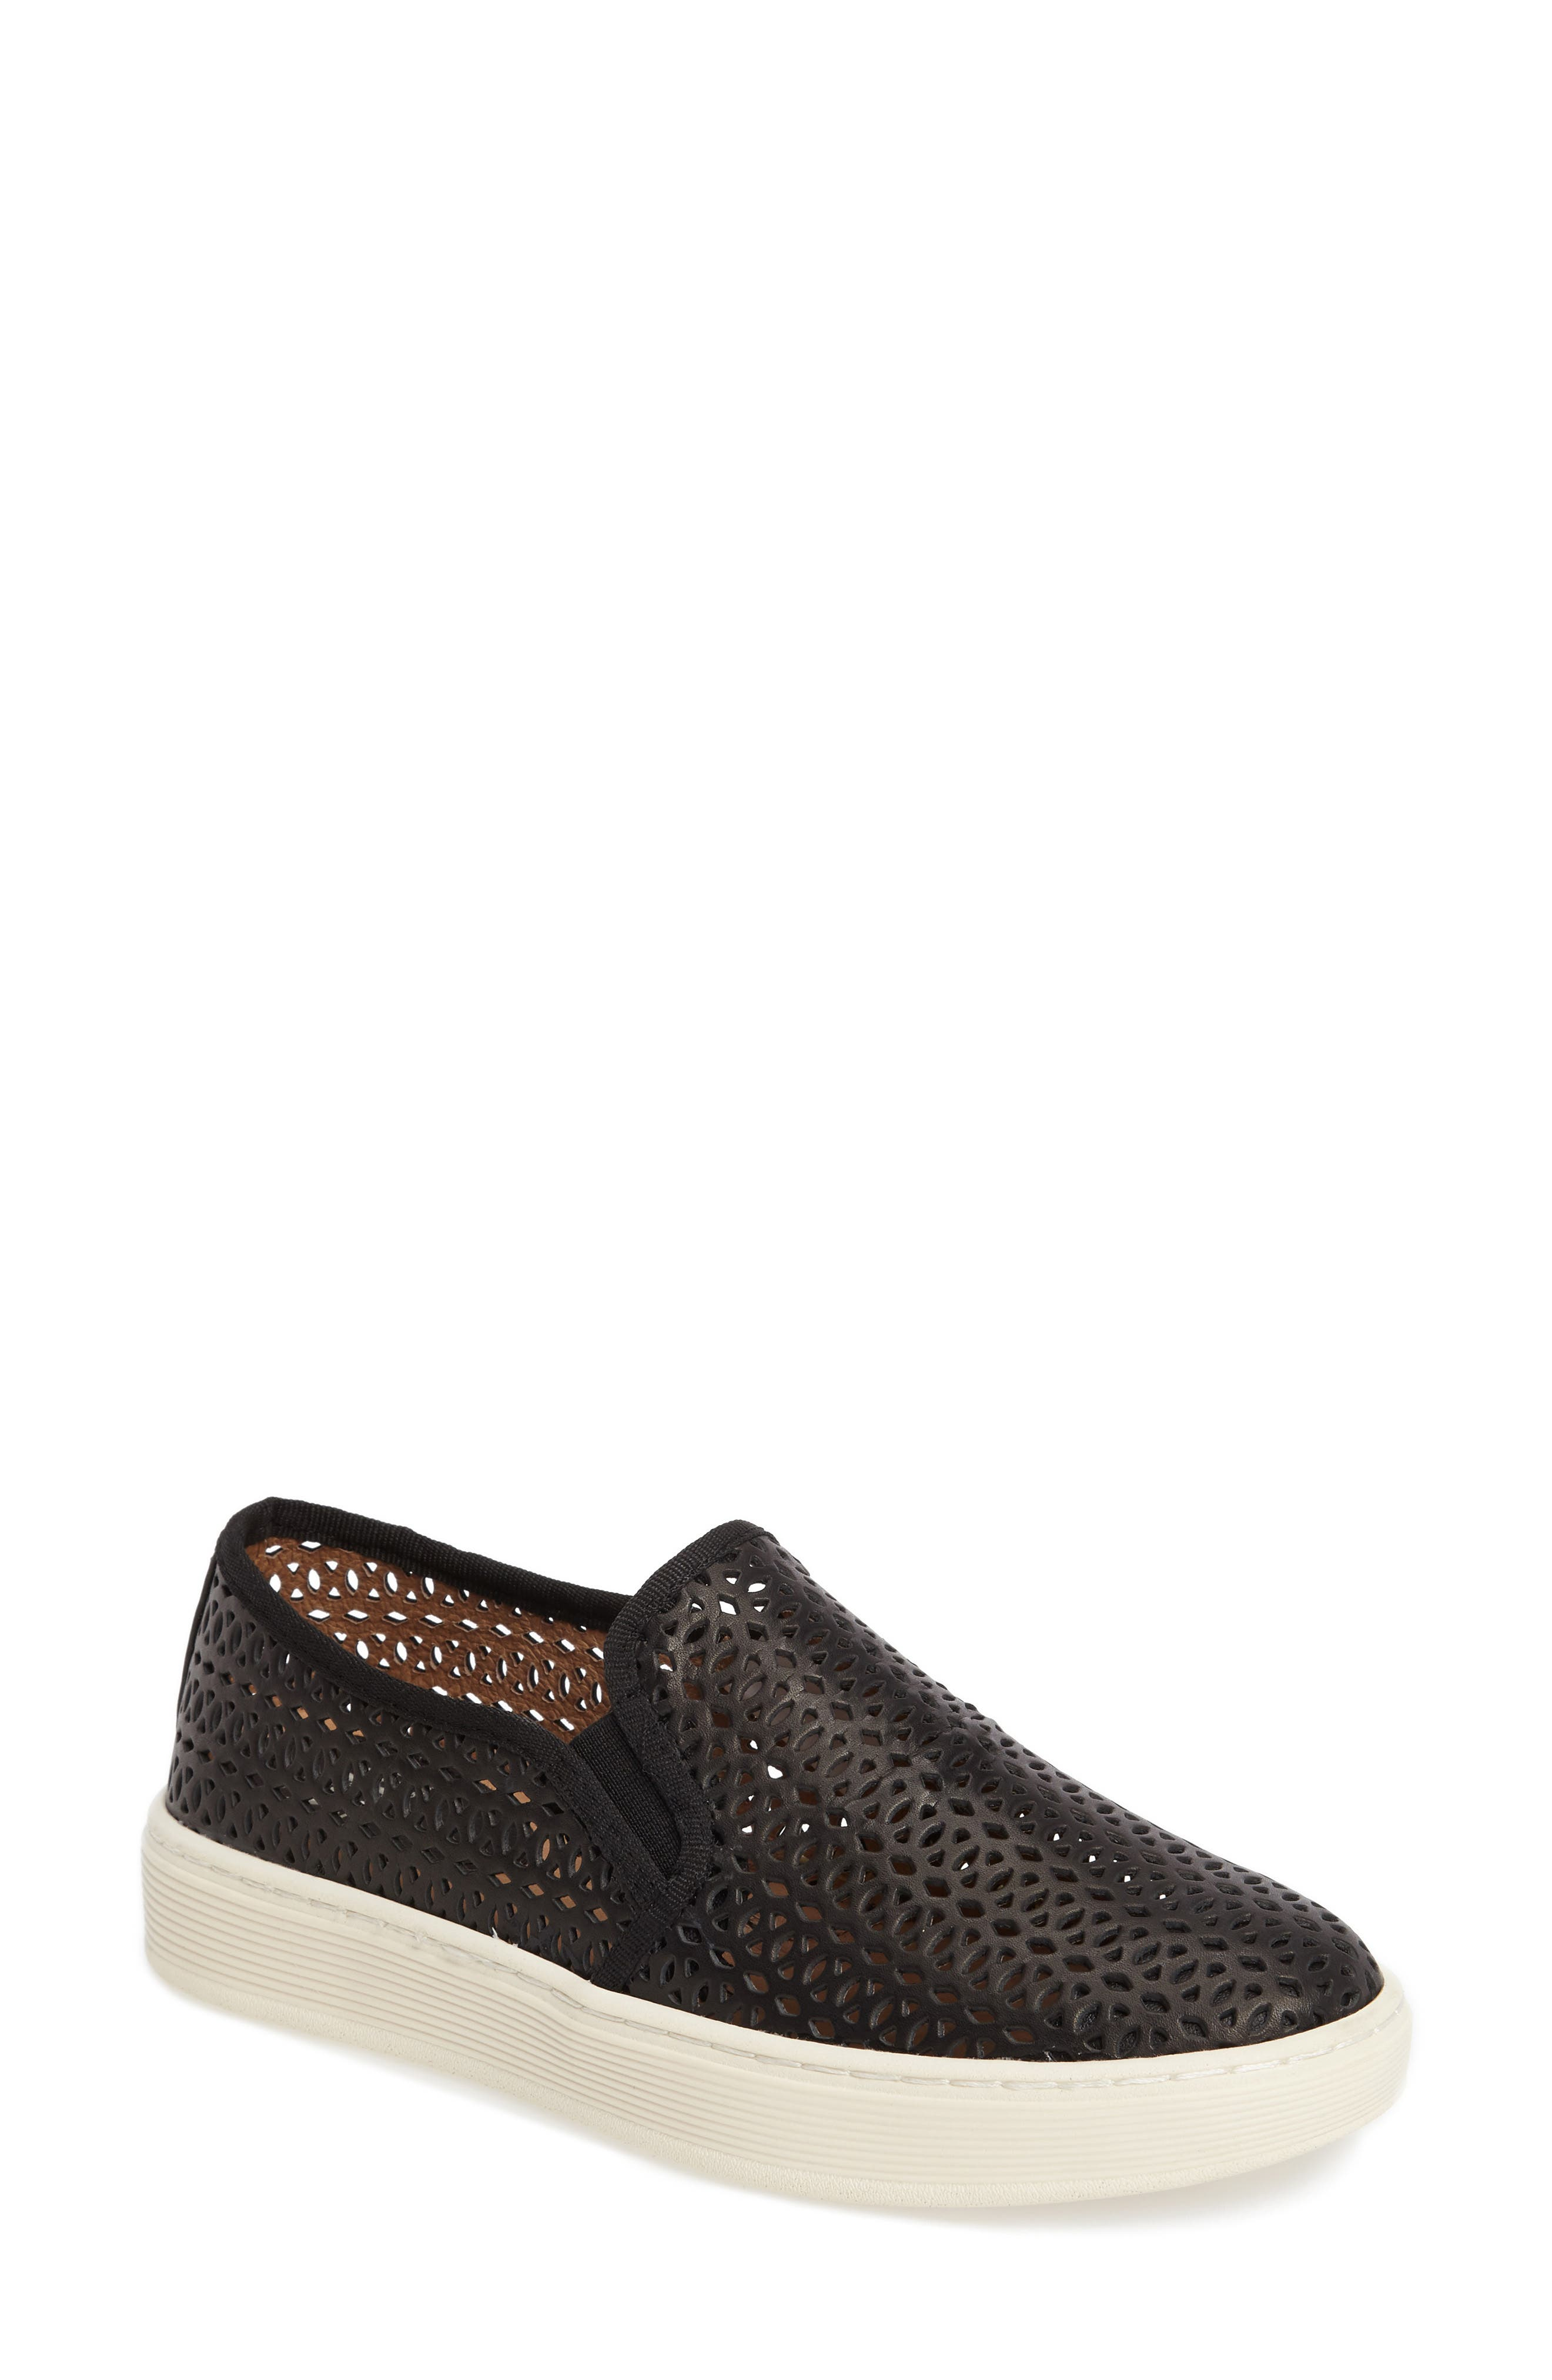 Söfft Somers II Slip-on Sneaker (Women)